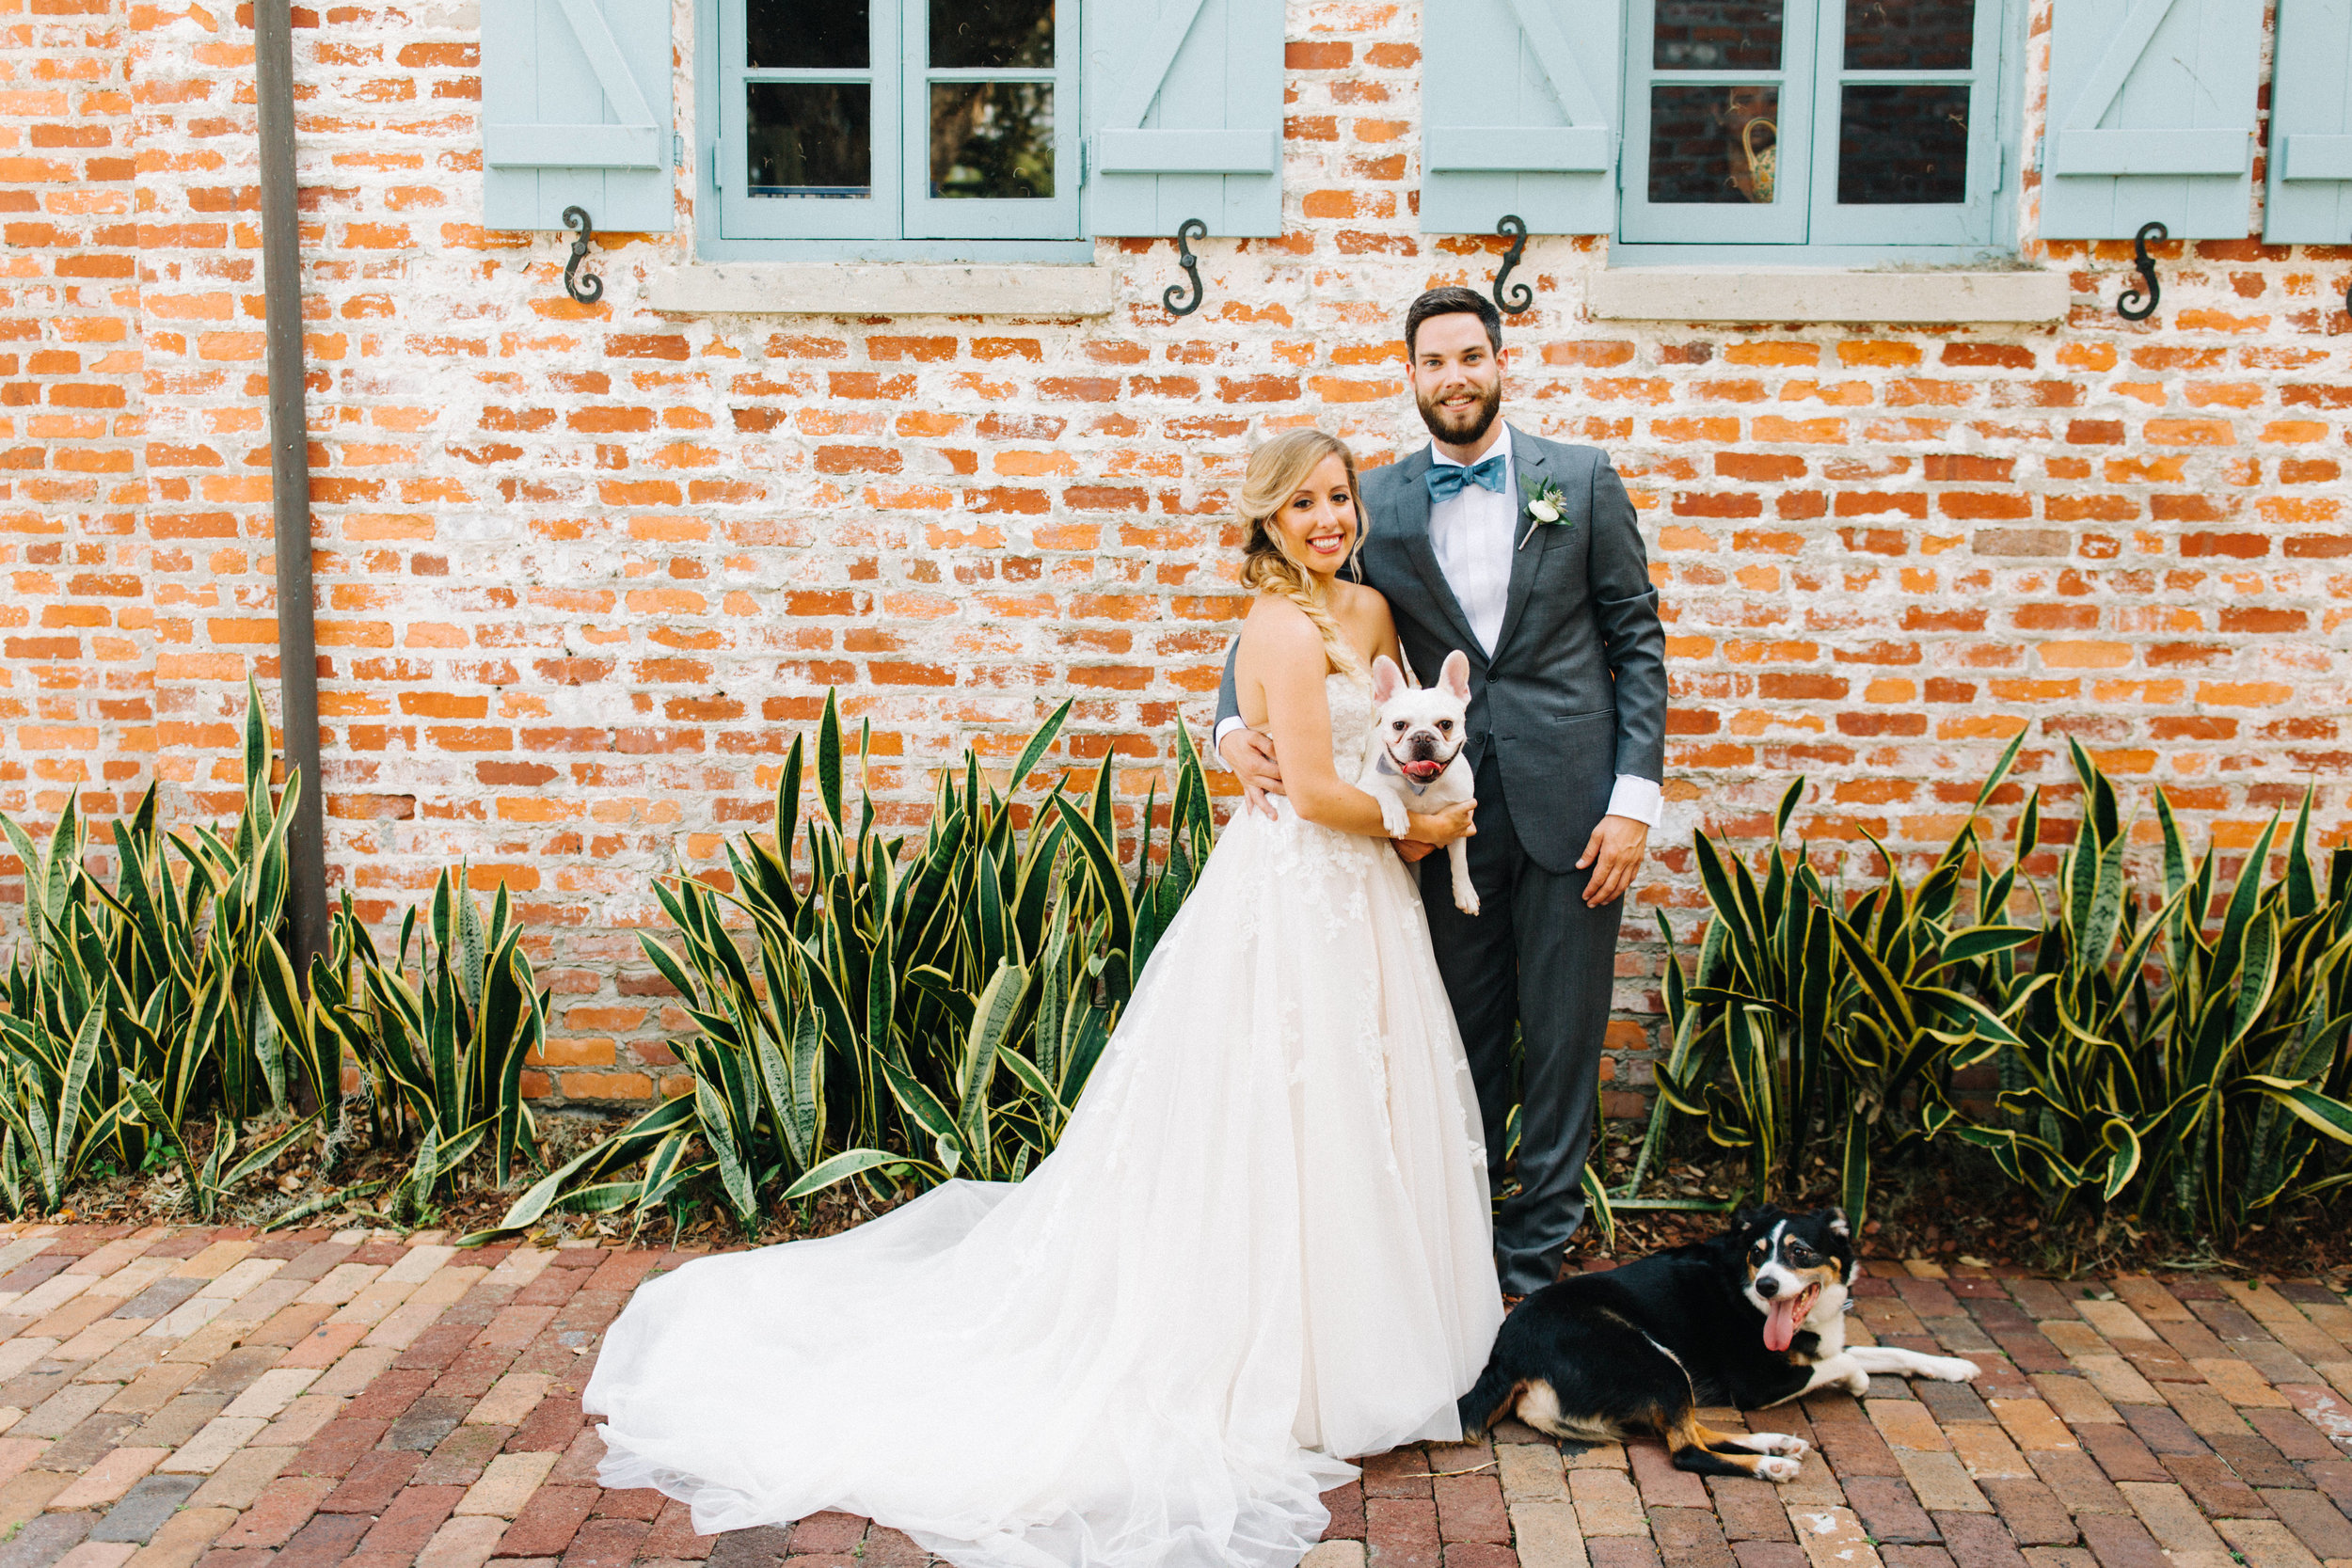 Orlando-Wedding-Photographer_Wedding-at-Casa-Feliz_Kaylin-and-Evan_Orlando-FL0311.jpg